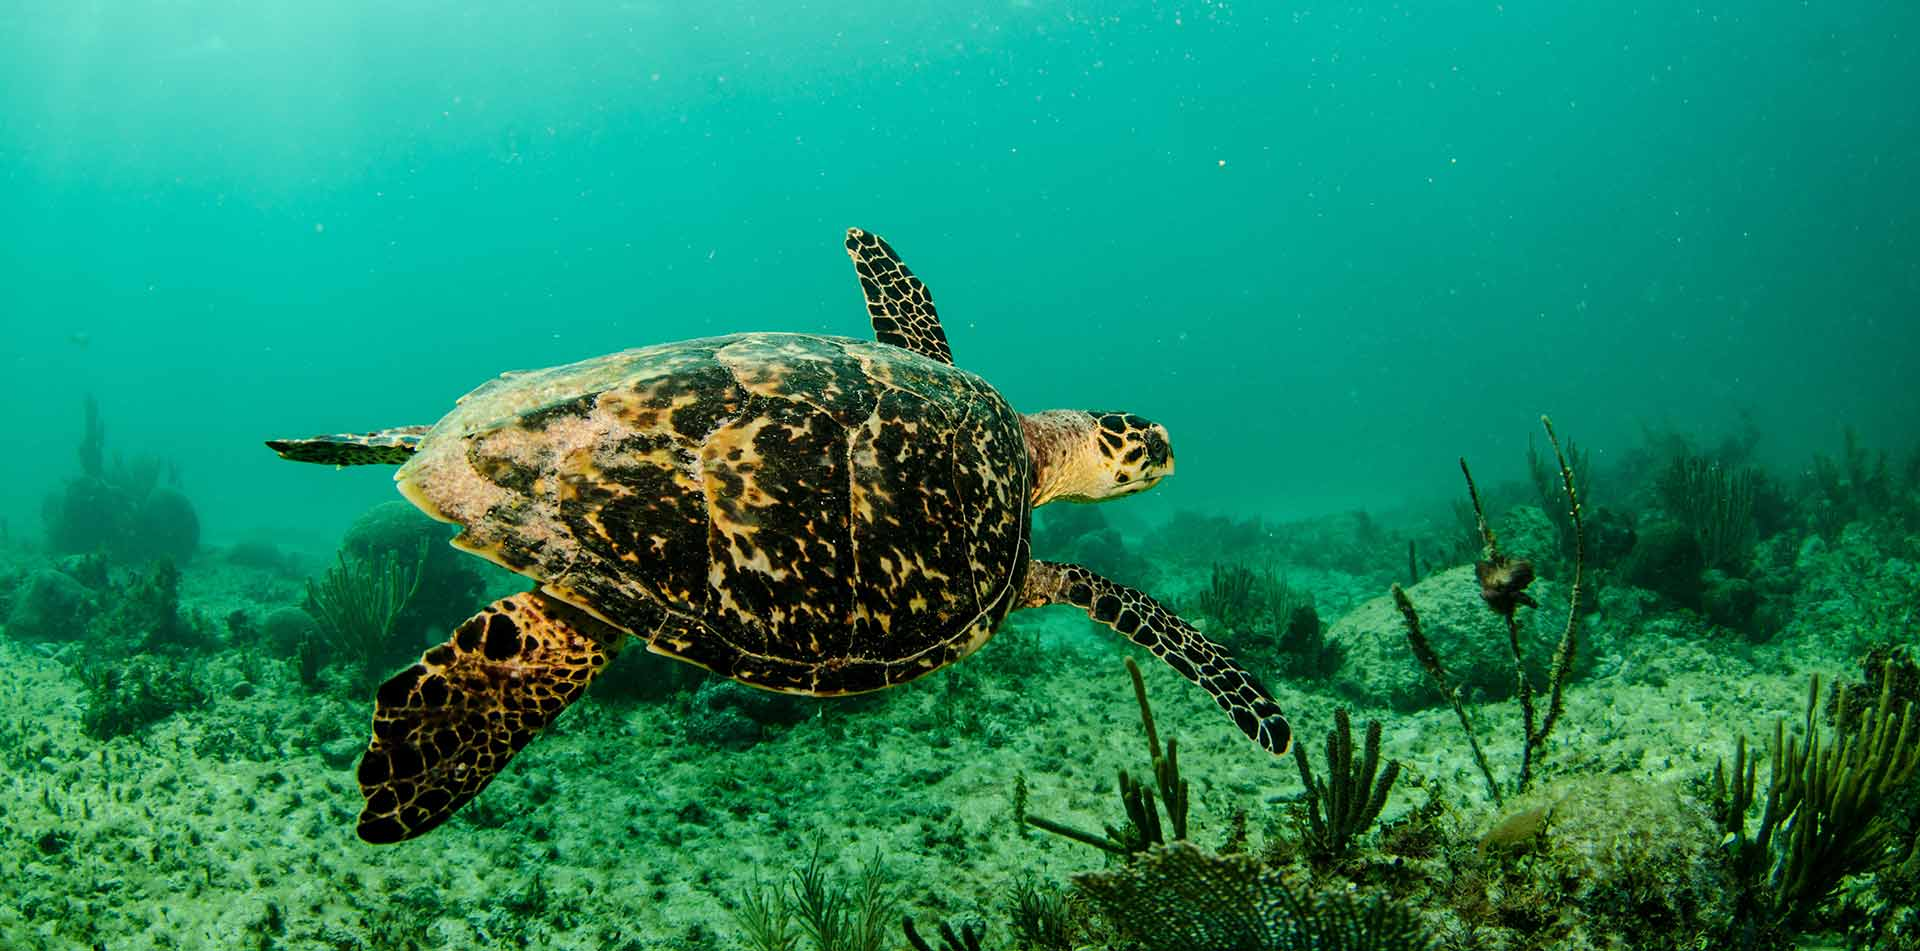 Central America Panama sea turtle swimming in blue ocean waters - luxury vacation destinations